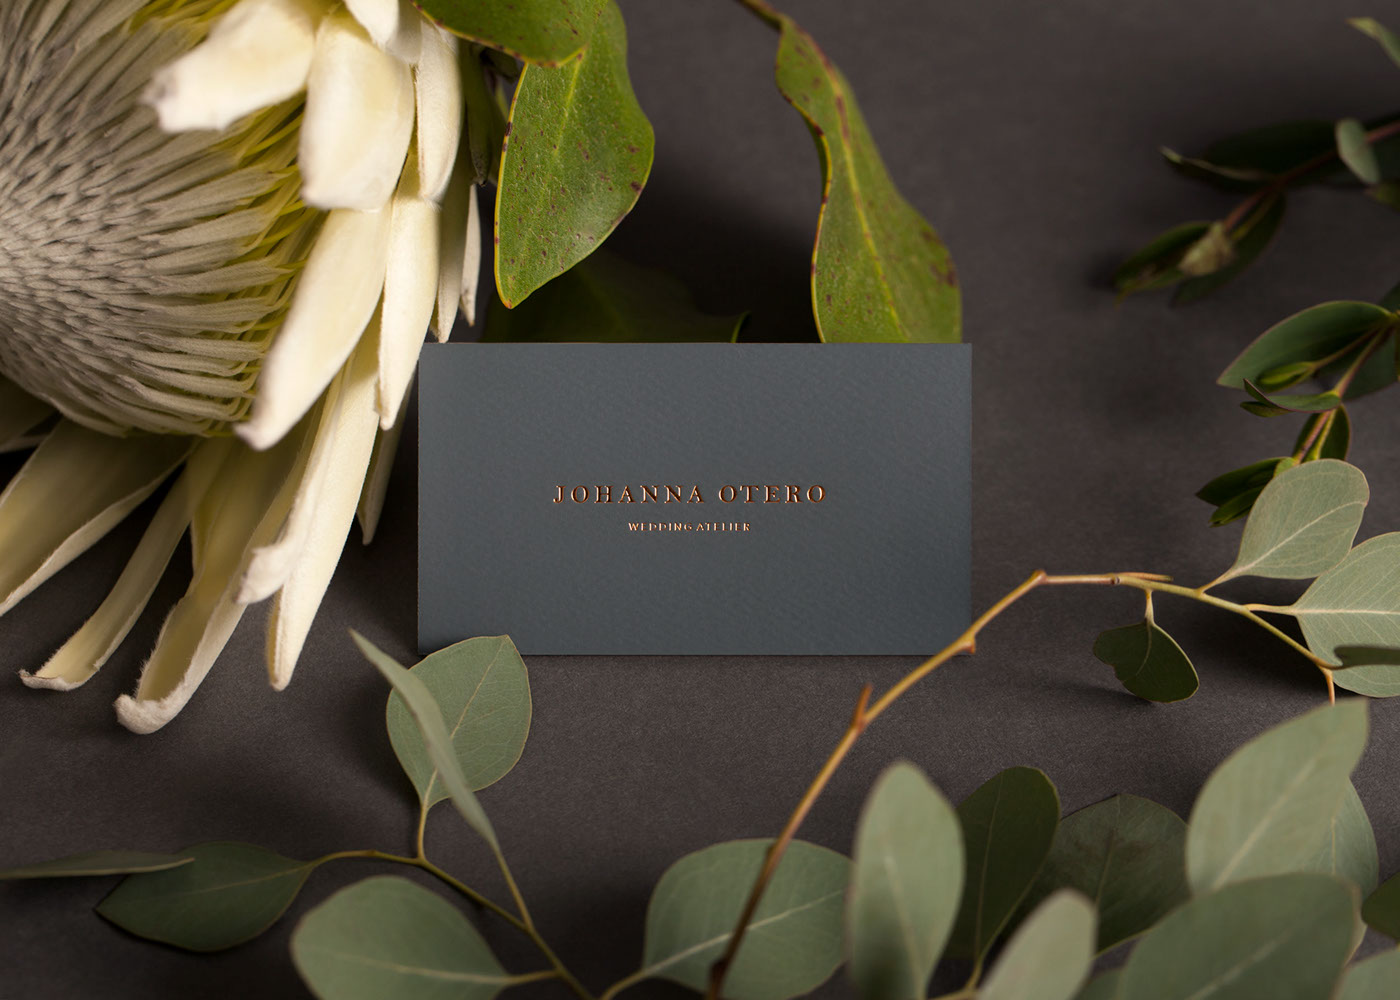 Business card of Johanna Otero